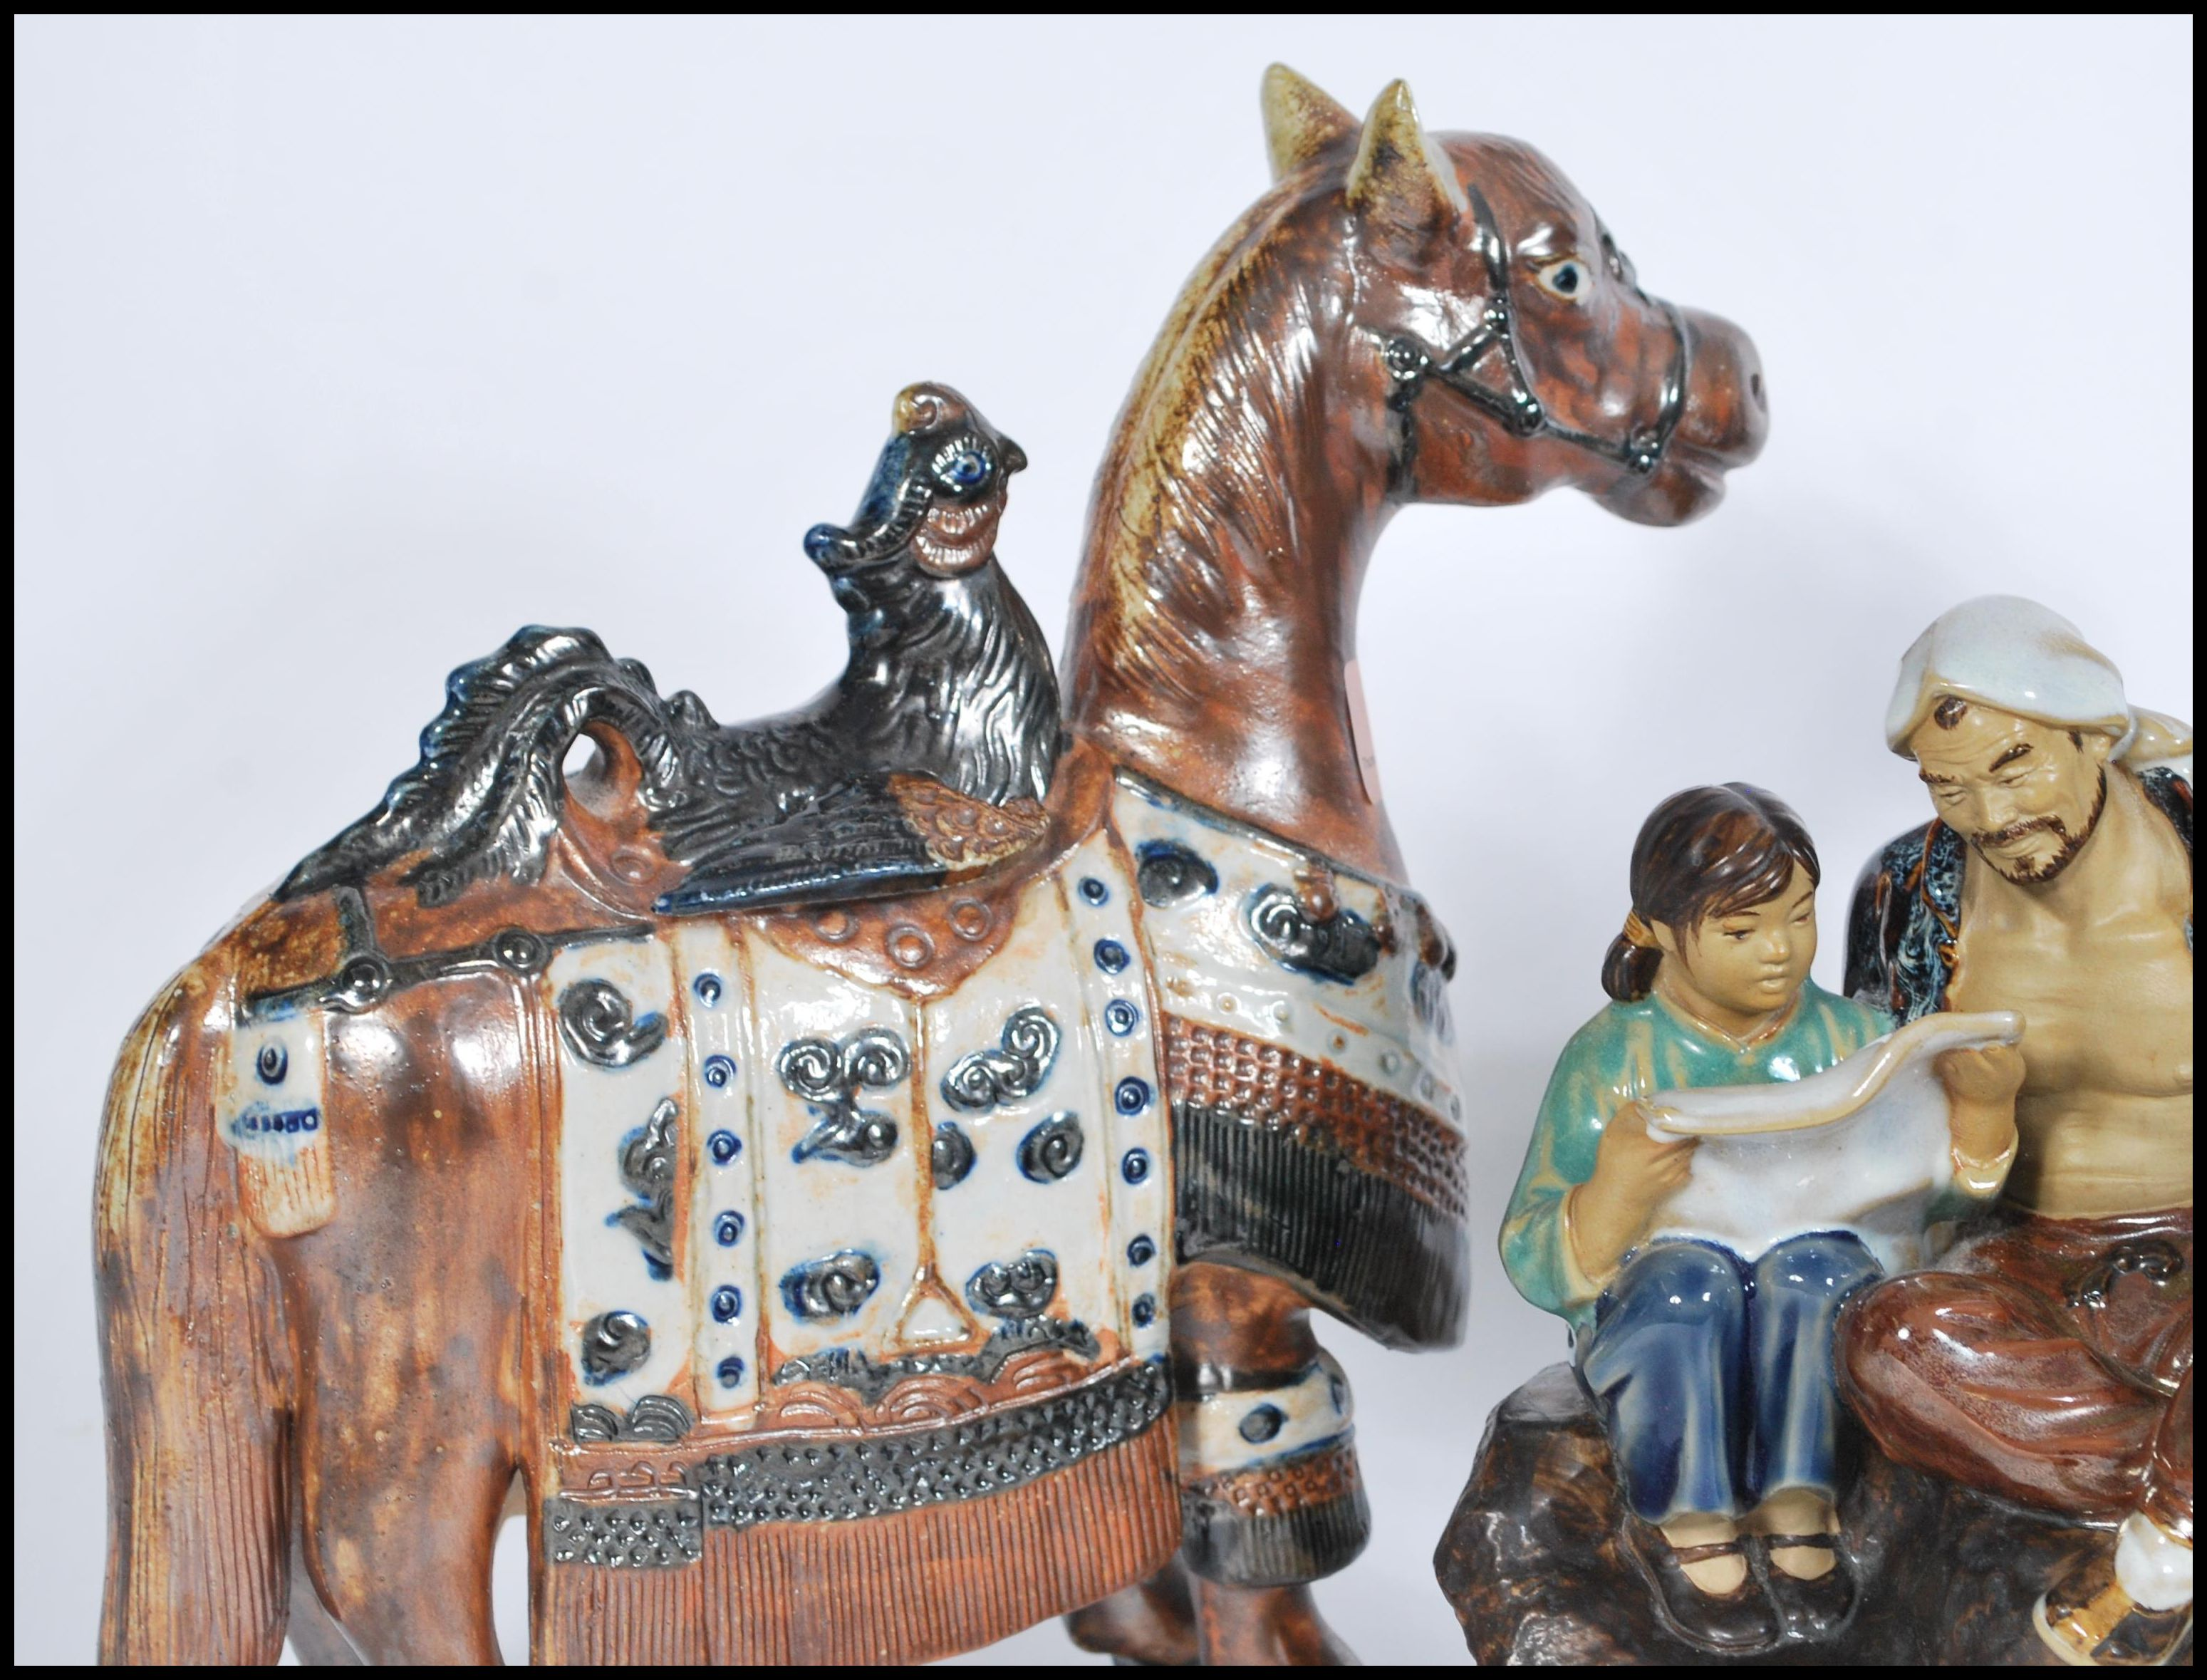 Lot 39 - A 20th Century ceramic Tang Dynasty style War Horse, the horse surmounted by a Phoenix, together